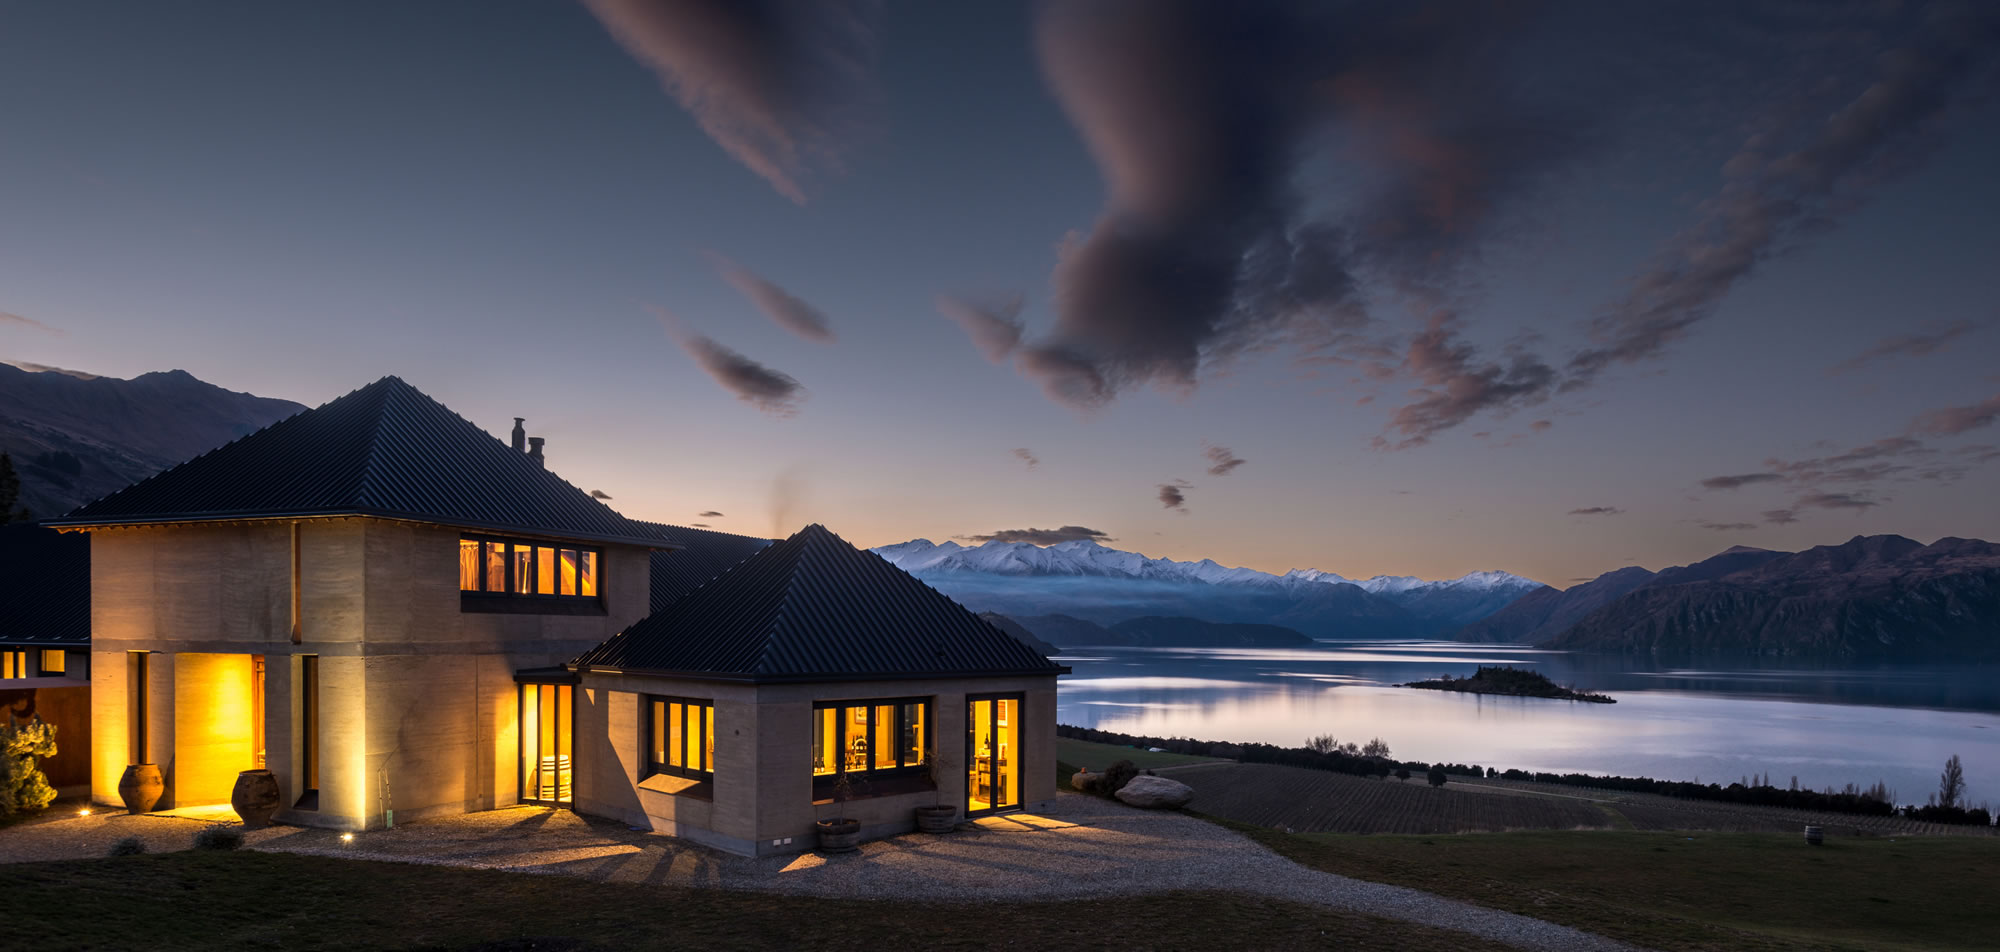 The Rippon Hall by Night - Venue Wanaka